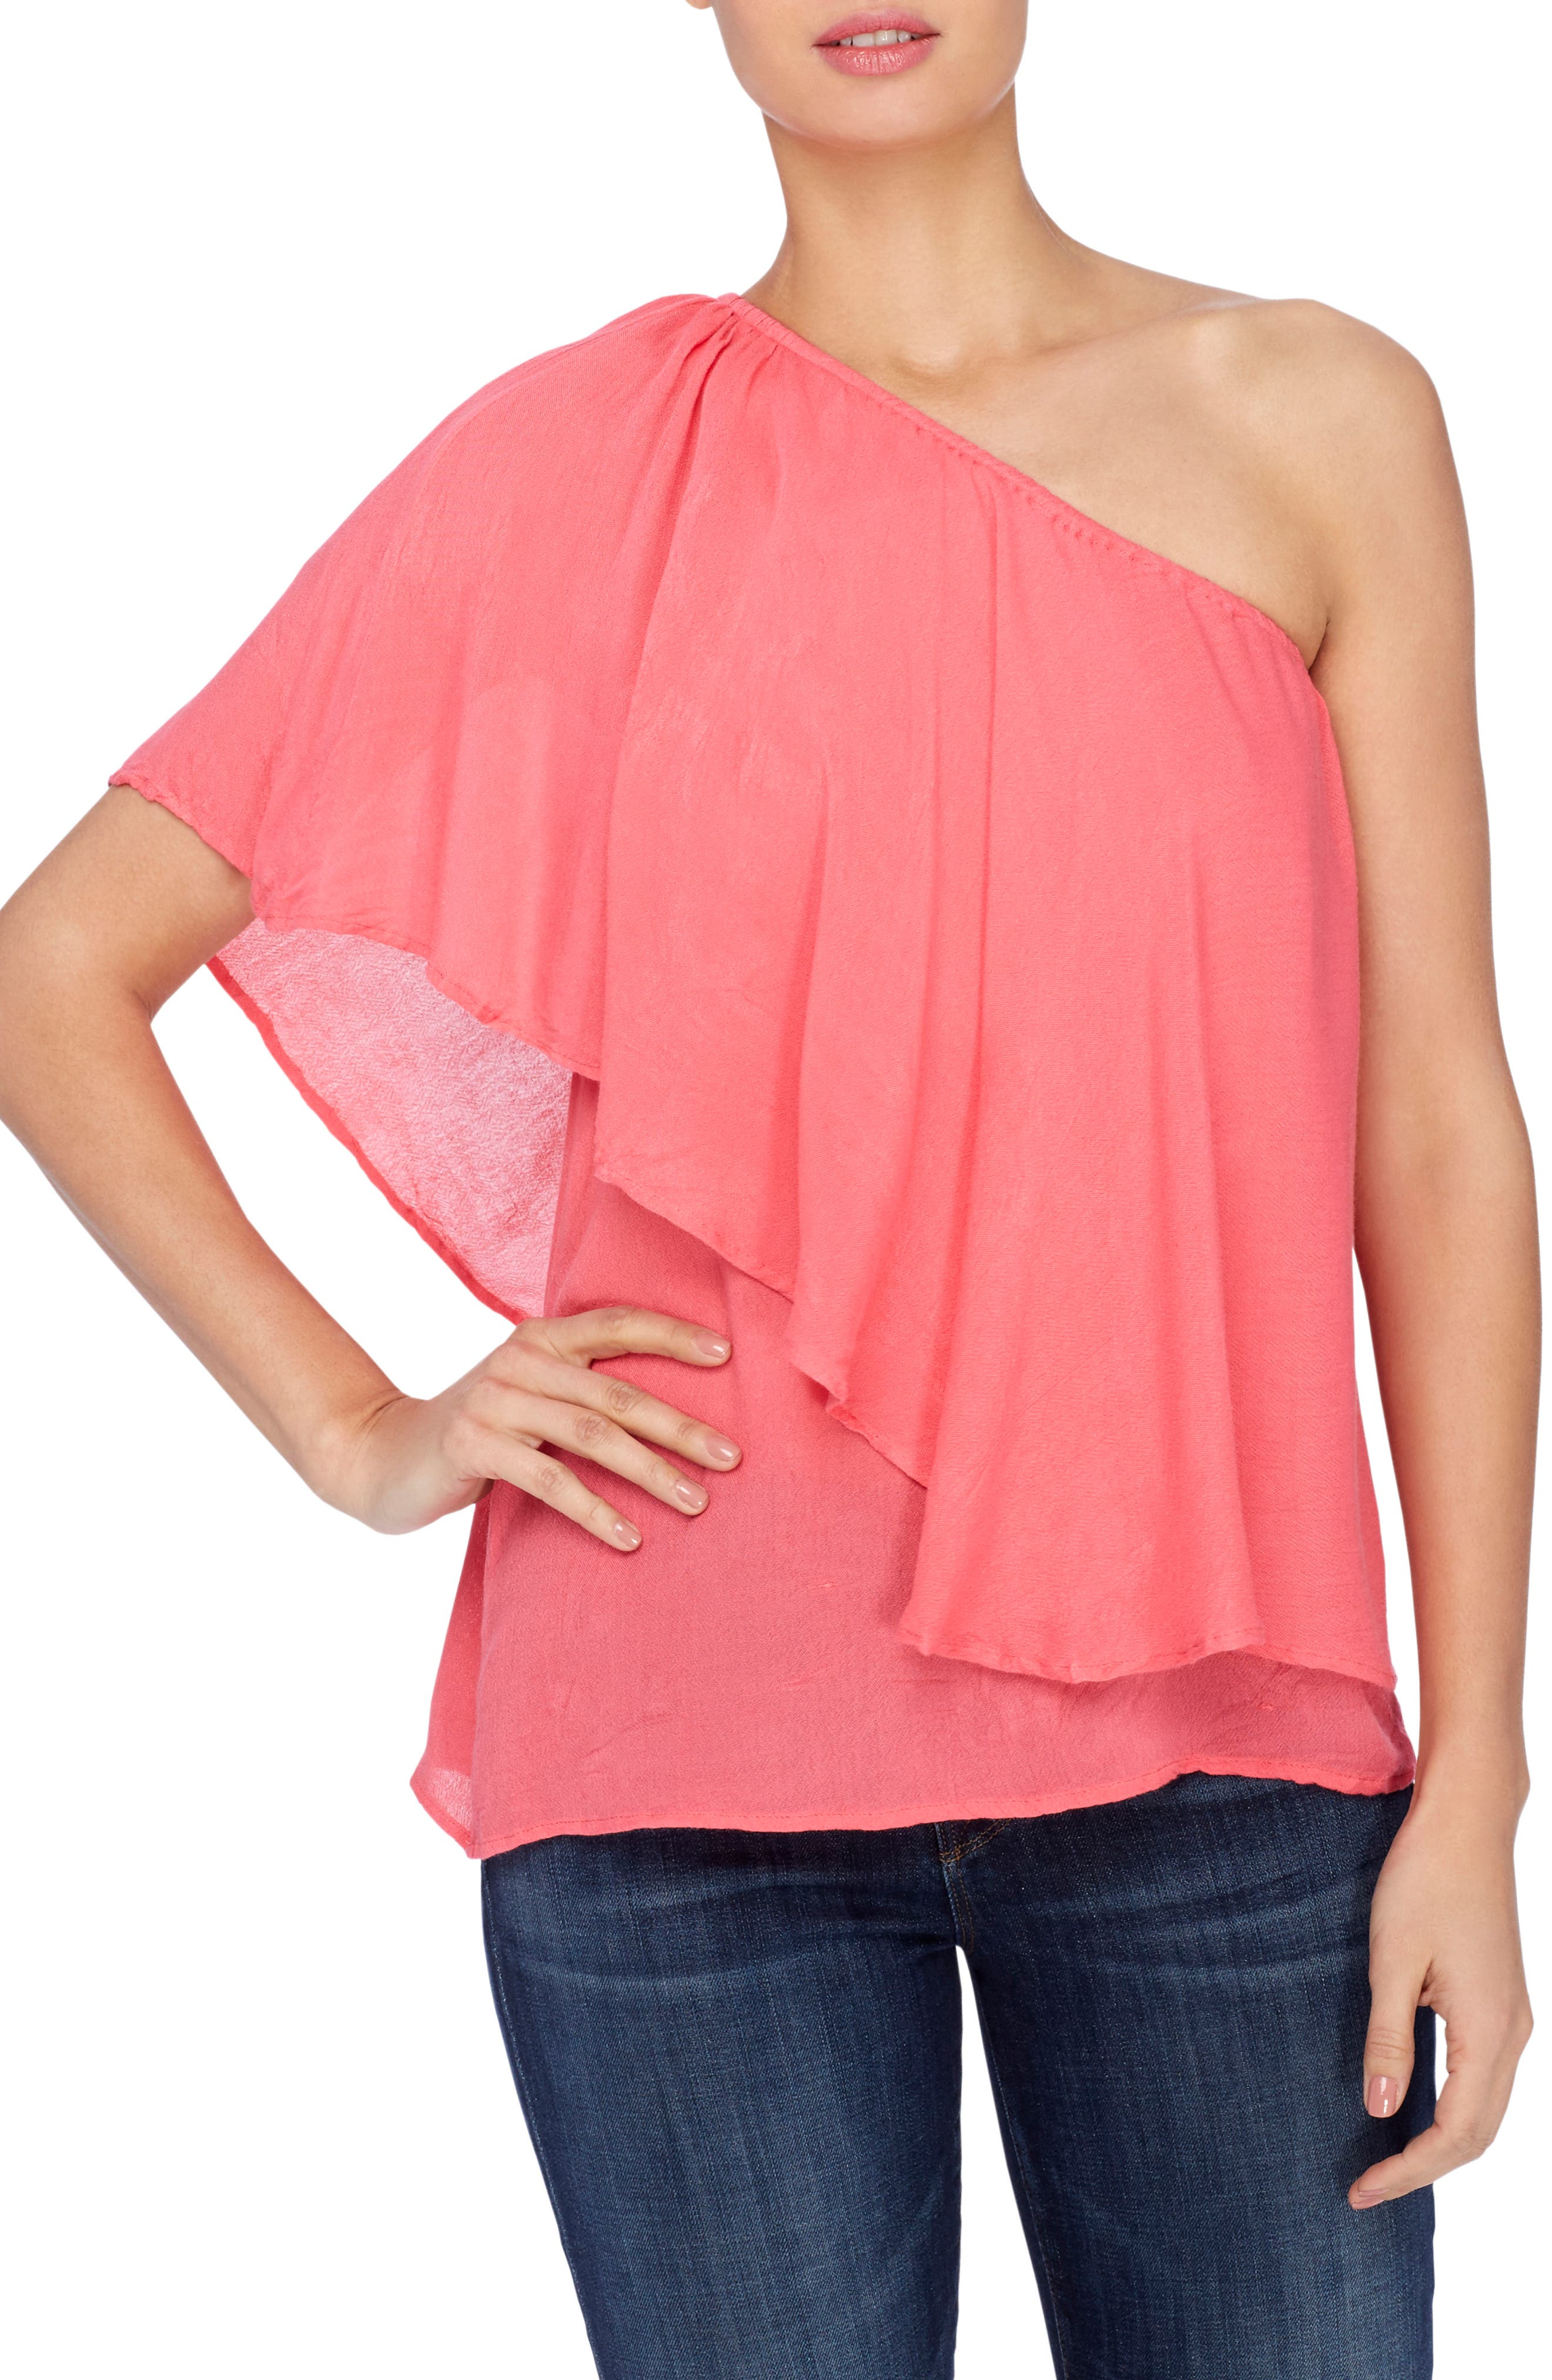 Magritte One-Shoulder Top,                         Main,                         color, Azalea Pink